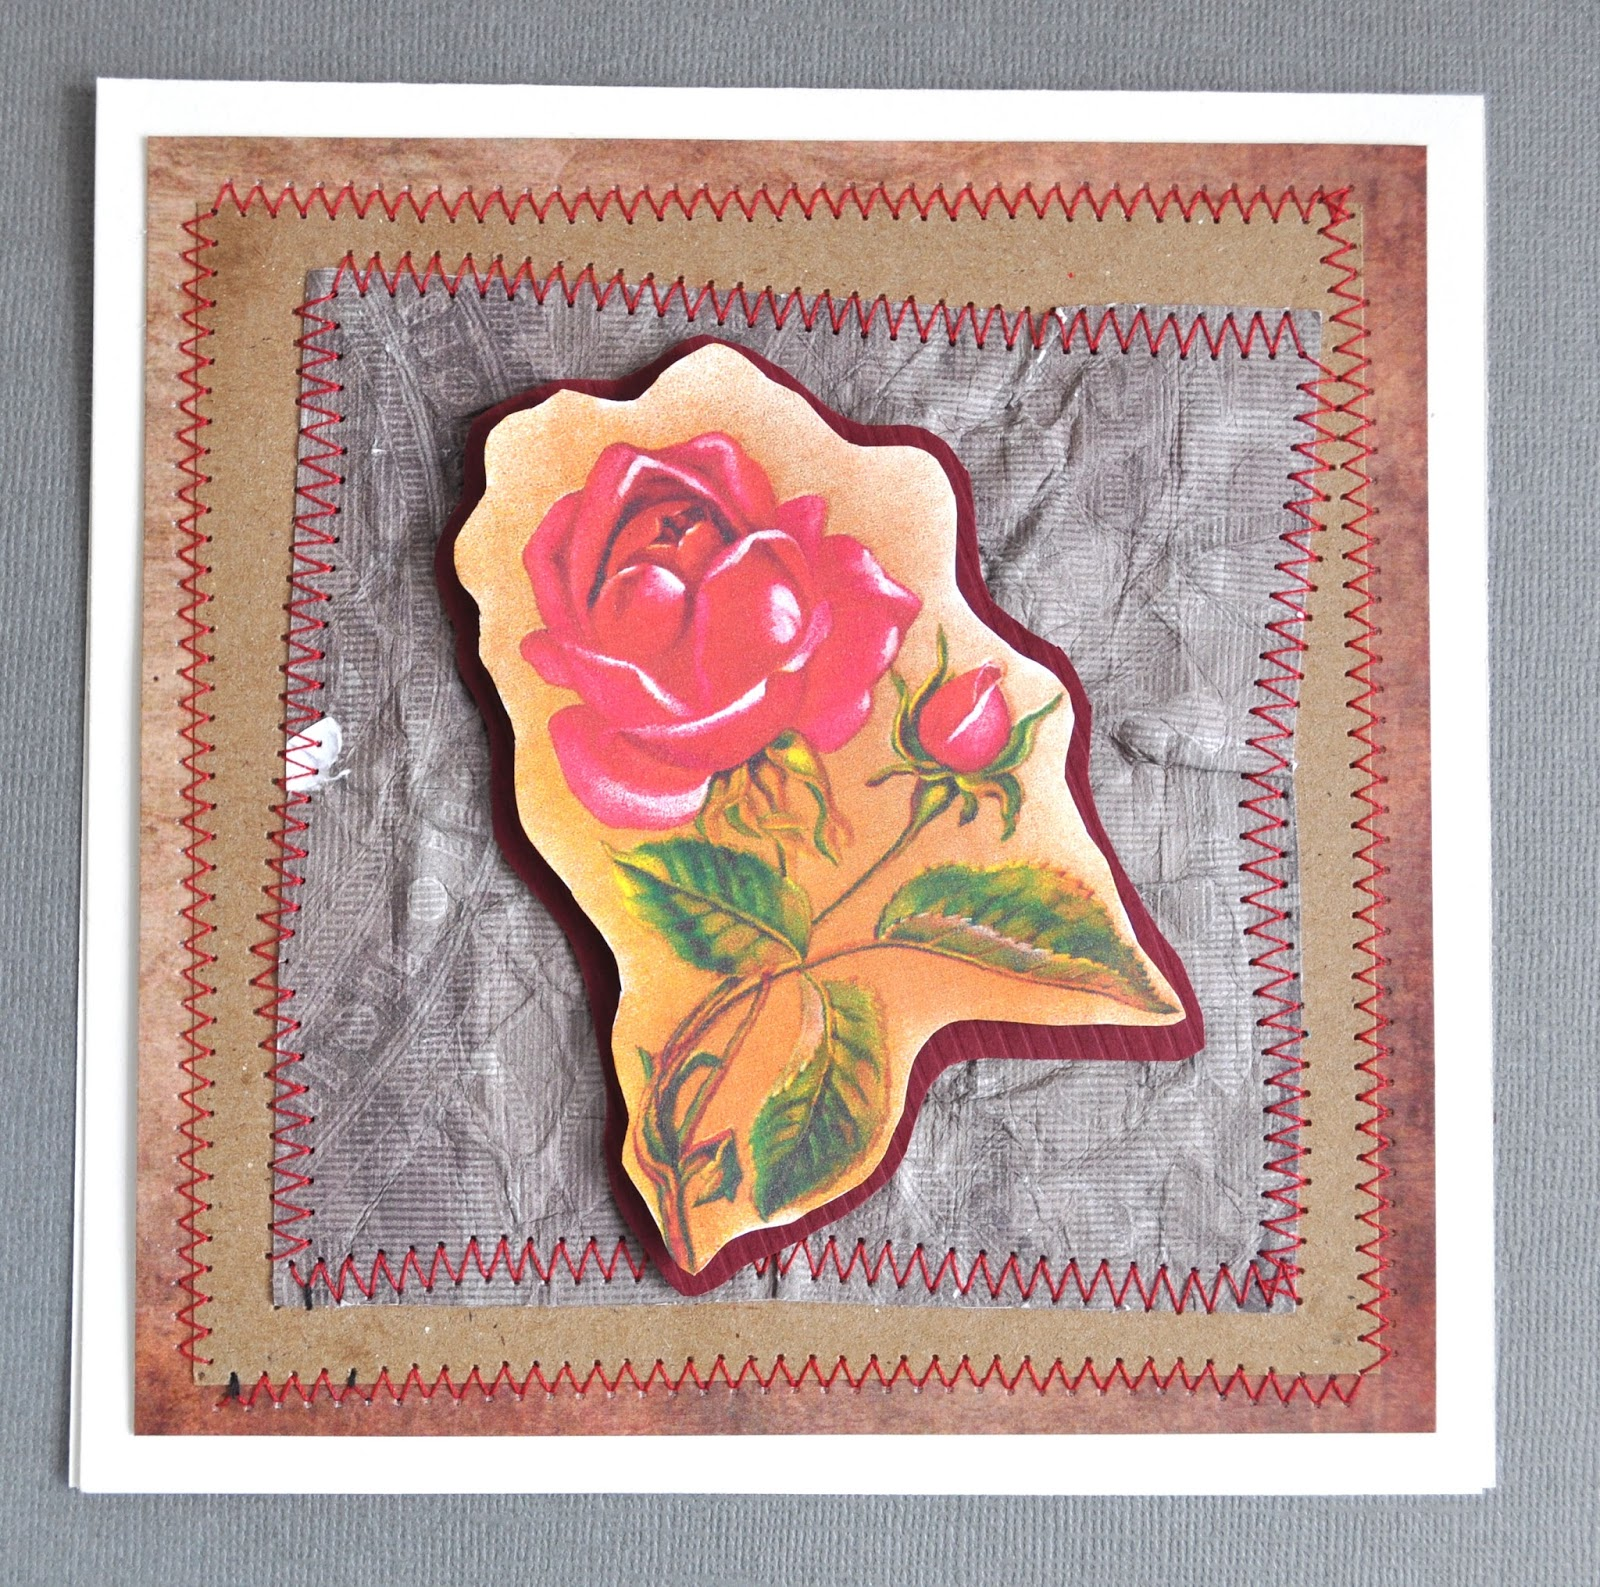 The Graphics Monarch Rose Red Yellow Handmade Greeting Cards Designs